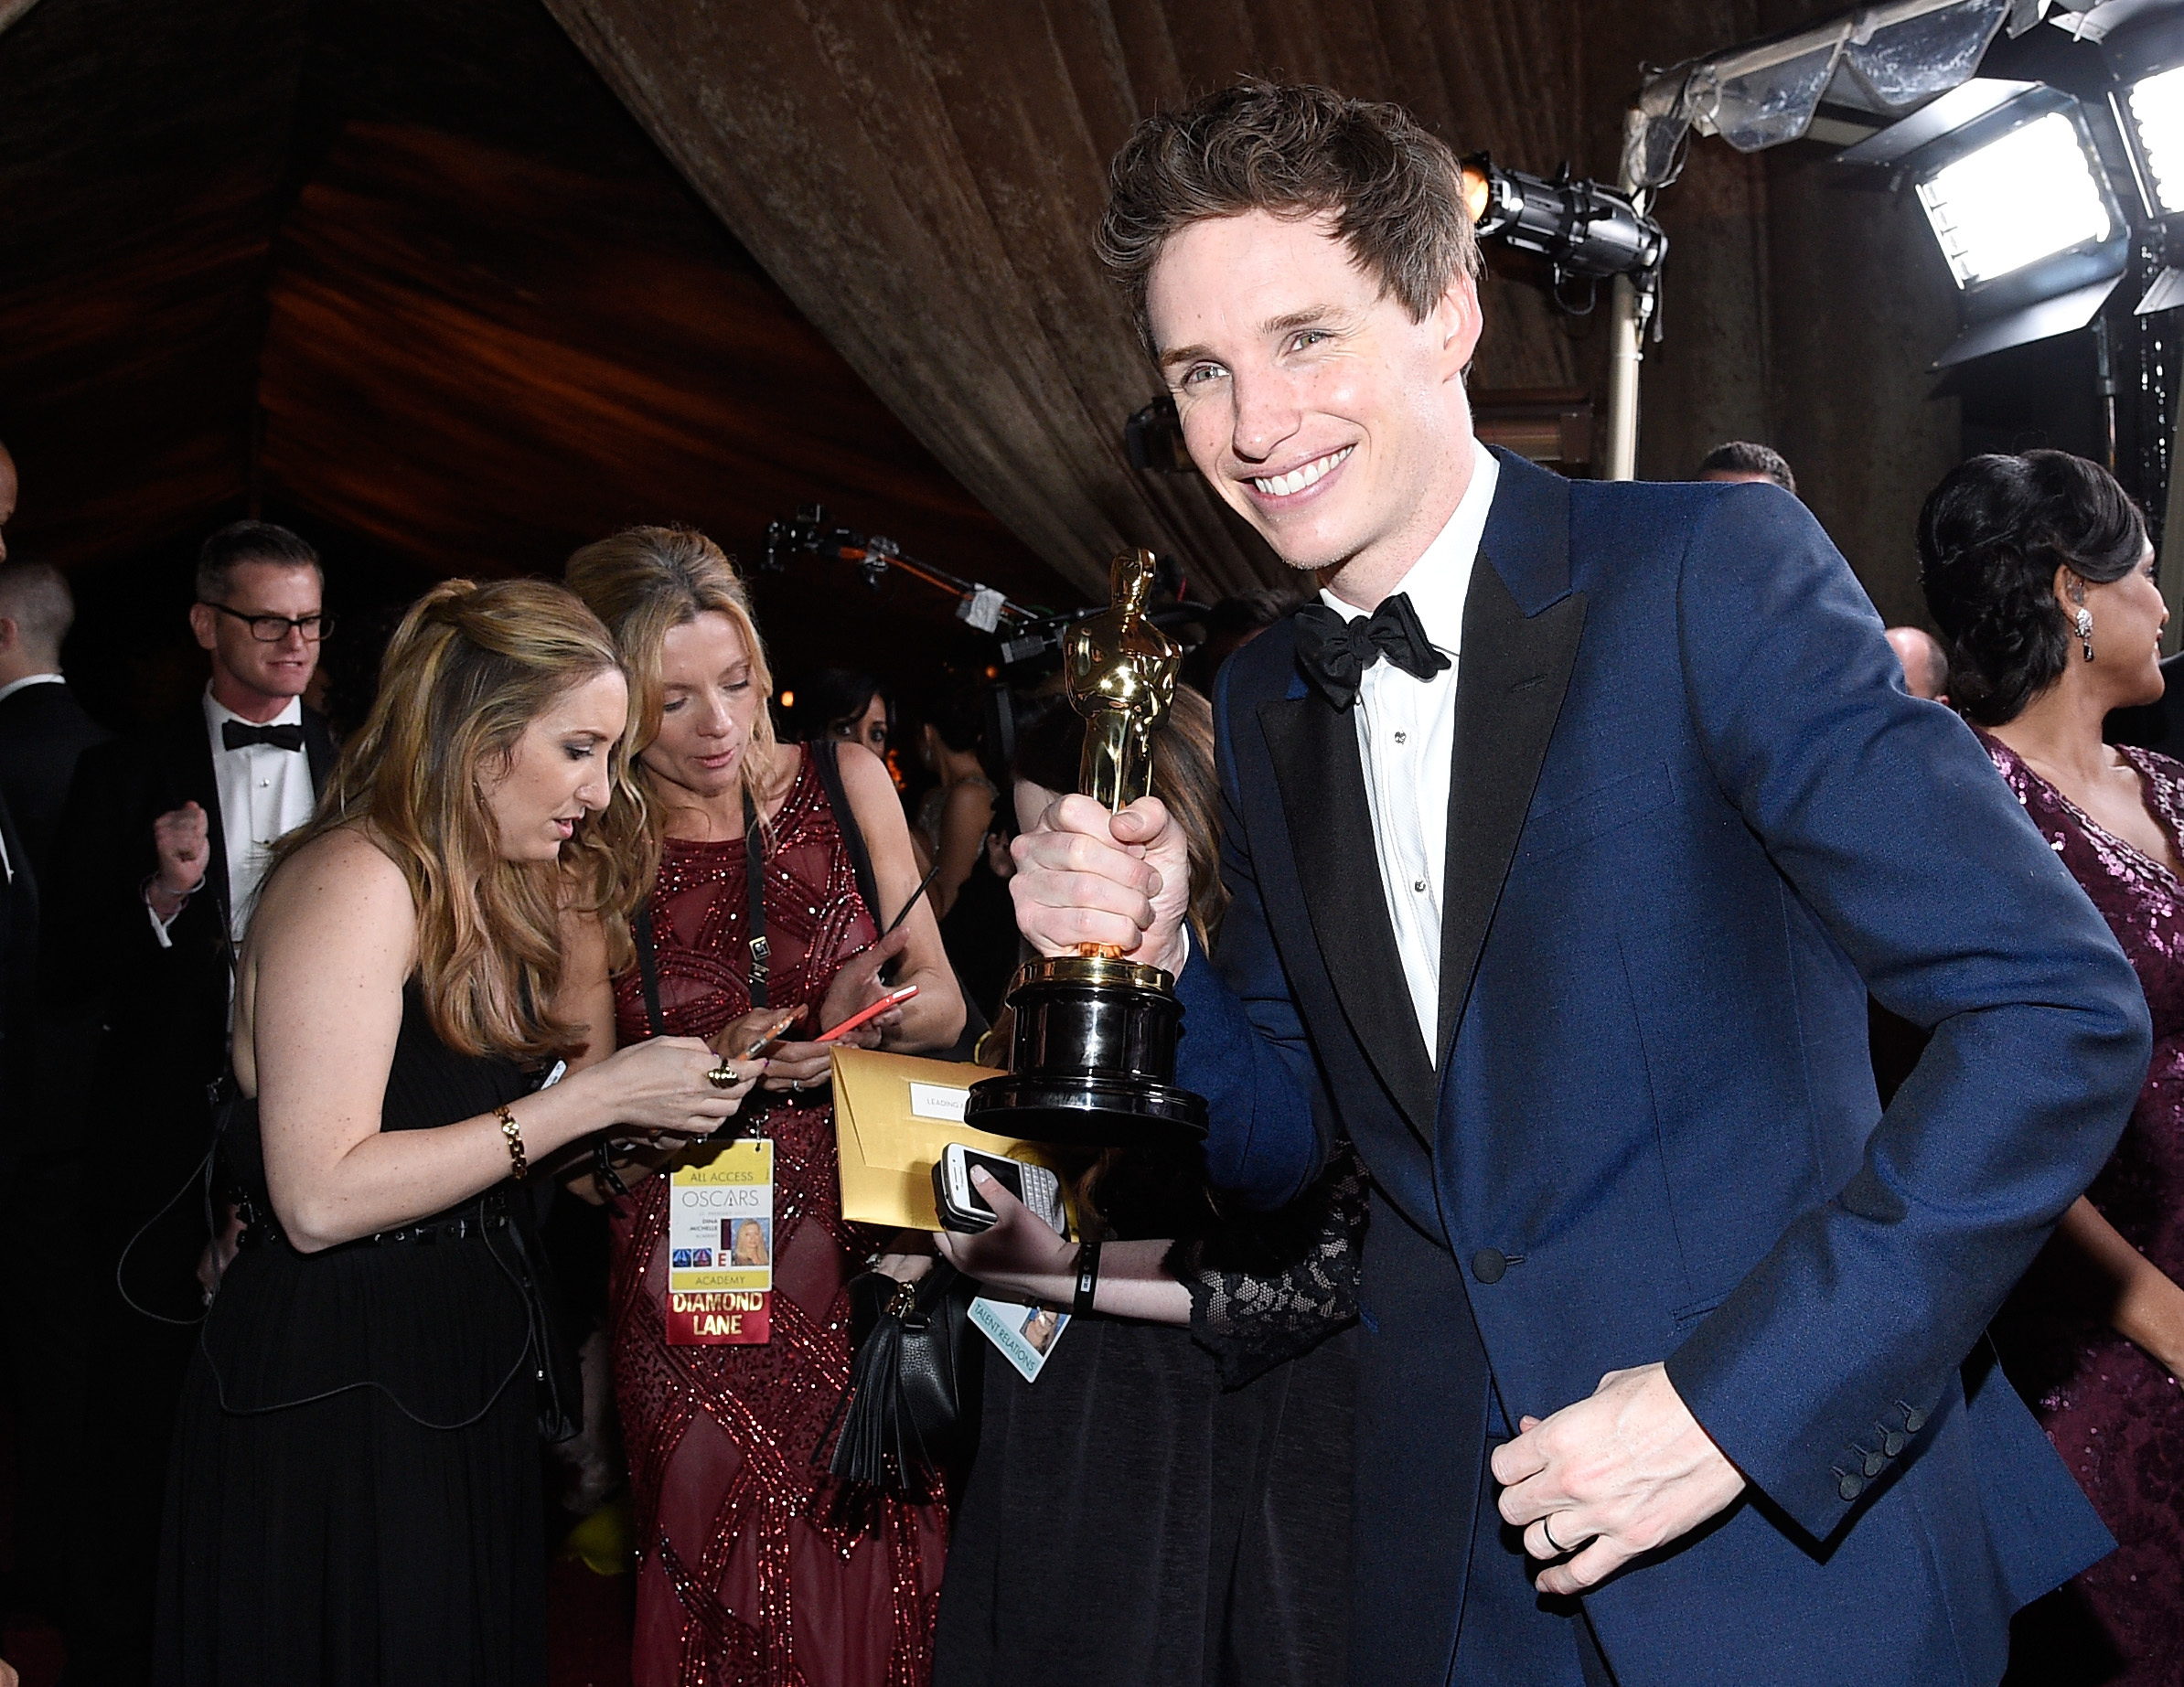 Eddie Redmayne attends the 87th Annual Academy Awards Governors Ball. (Getty Images)